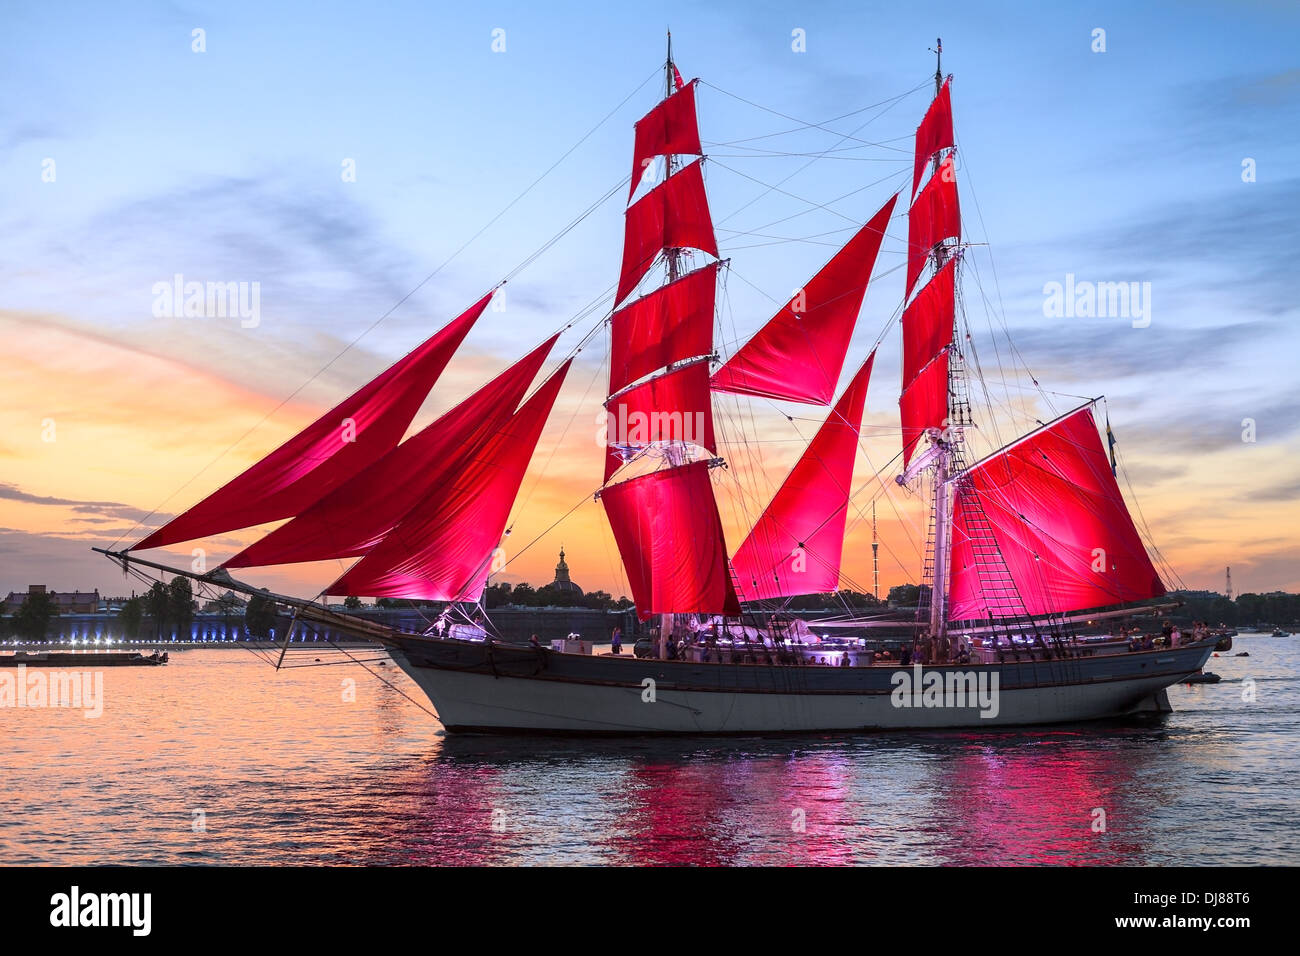 Celebration Scarlet Sails show during the White Nights Festival, St. Petersburg, Russia. Vessel over sunset sky Stock Photo